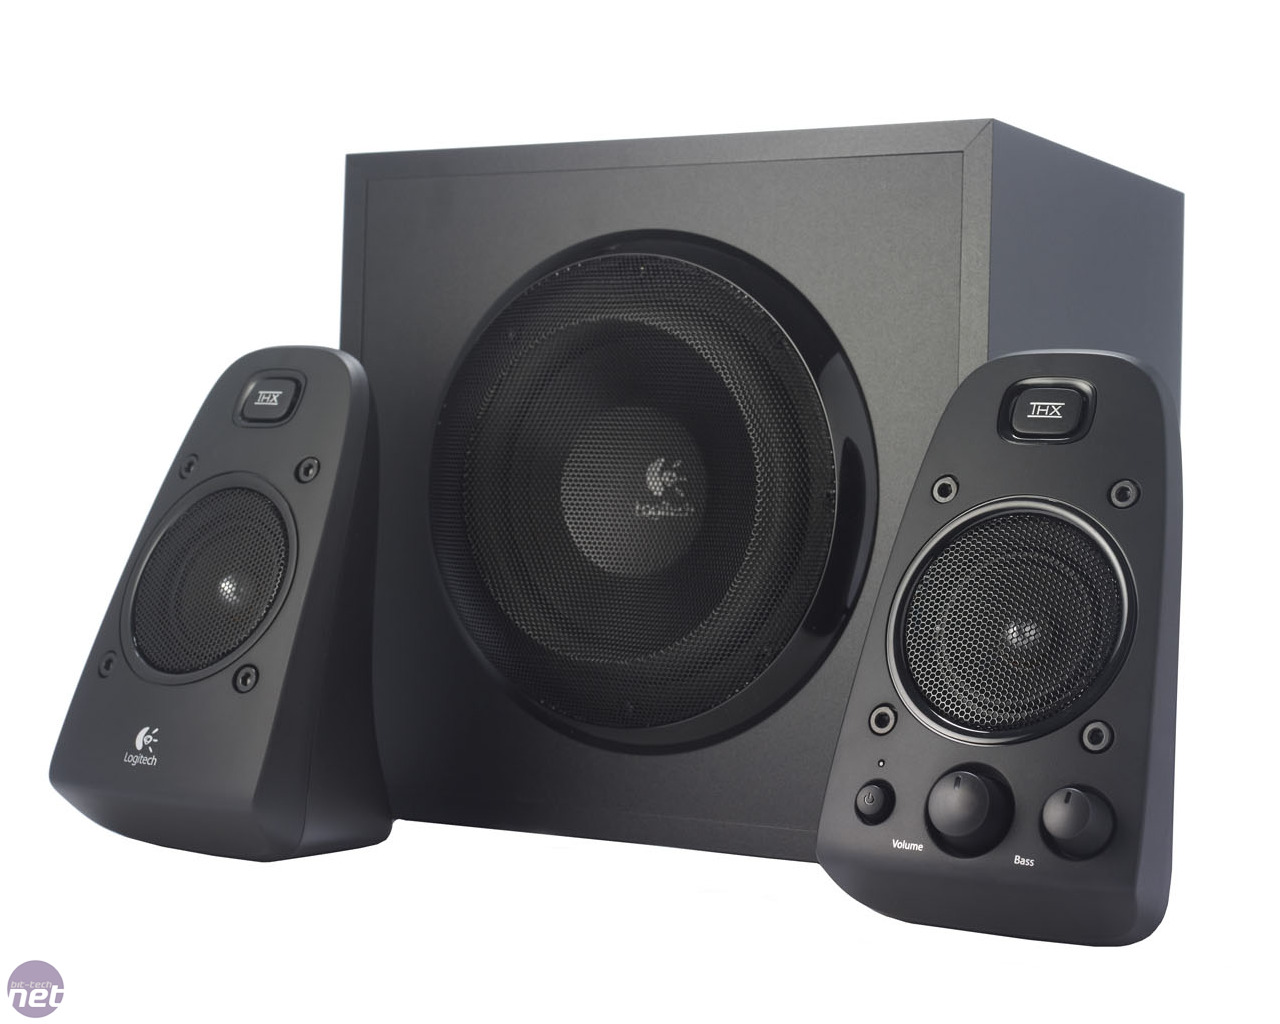 logitech speaker system z623 review bit